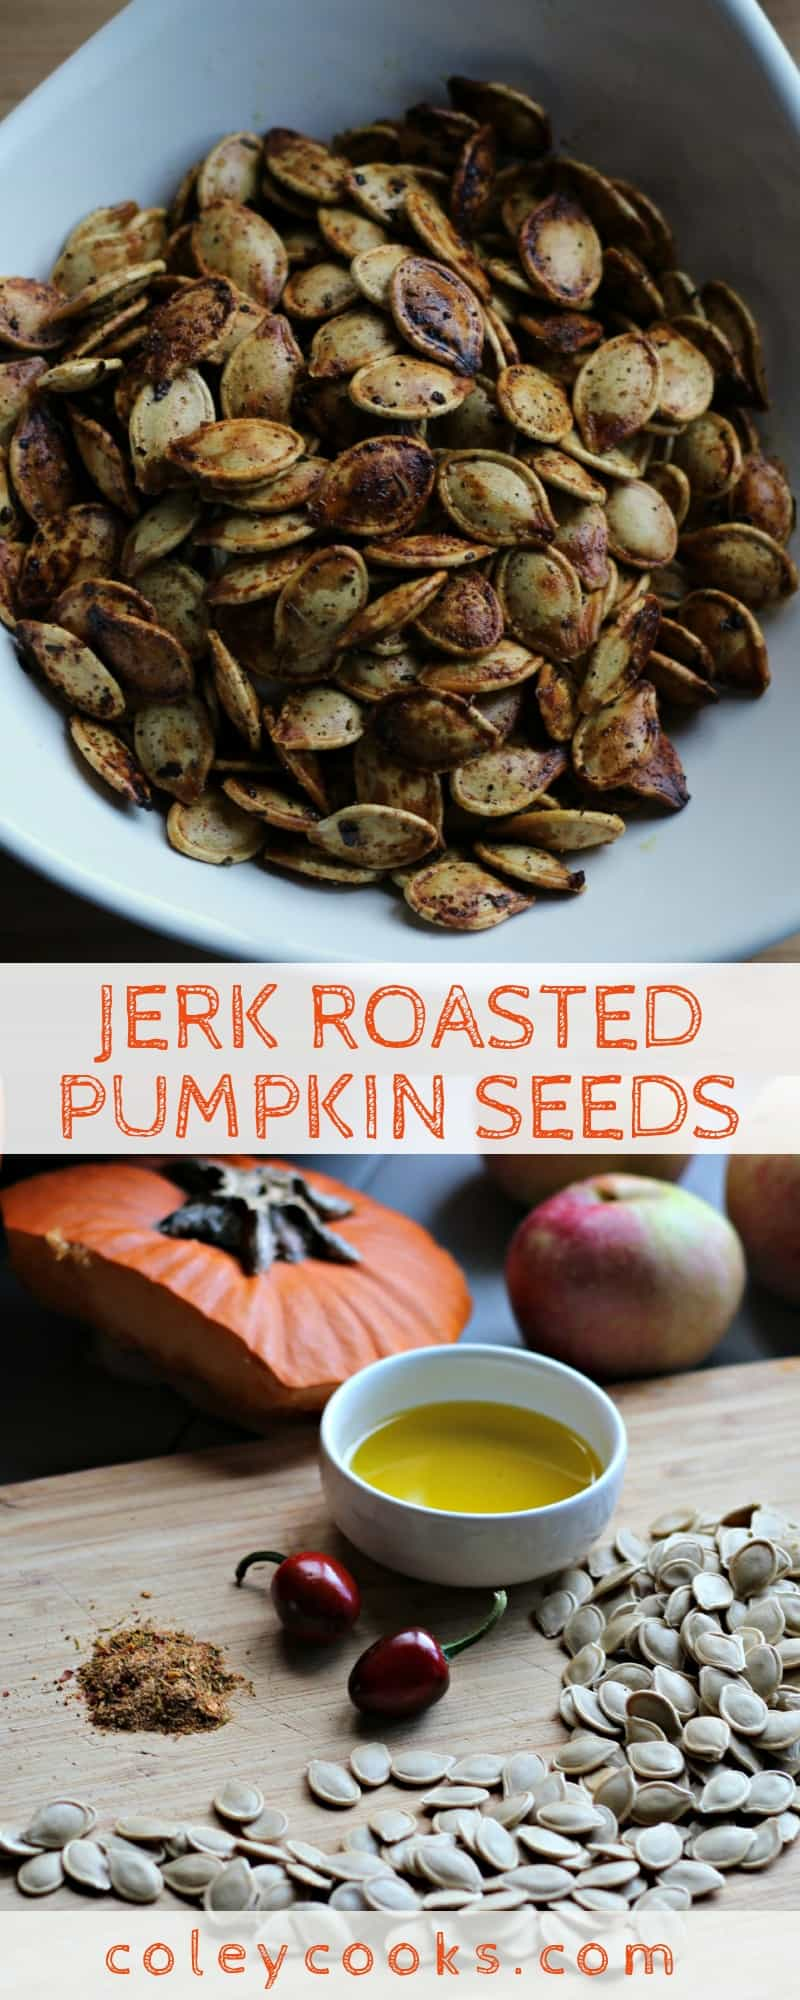 JERK ROASTED PUMPKIN SEEDS | This spicy recipe for Jamaican jerk roasted pumpkin seeds is perfect for Halloween! #pumpkin #pumpkinseeds #halloween #pumpkincarving #recipe #method #technique #jerk #Jamaican | ColeyCooks.com